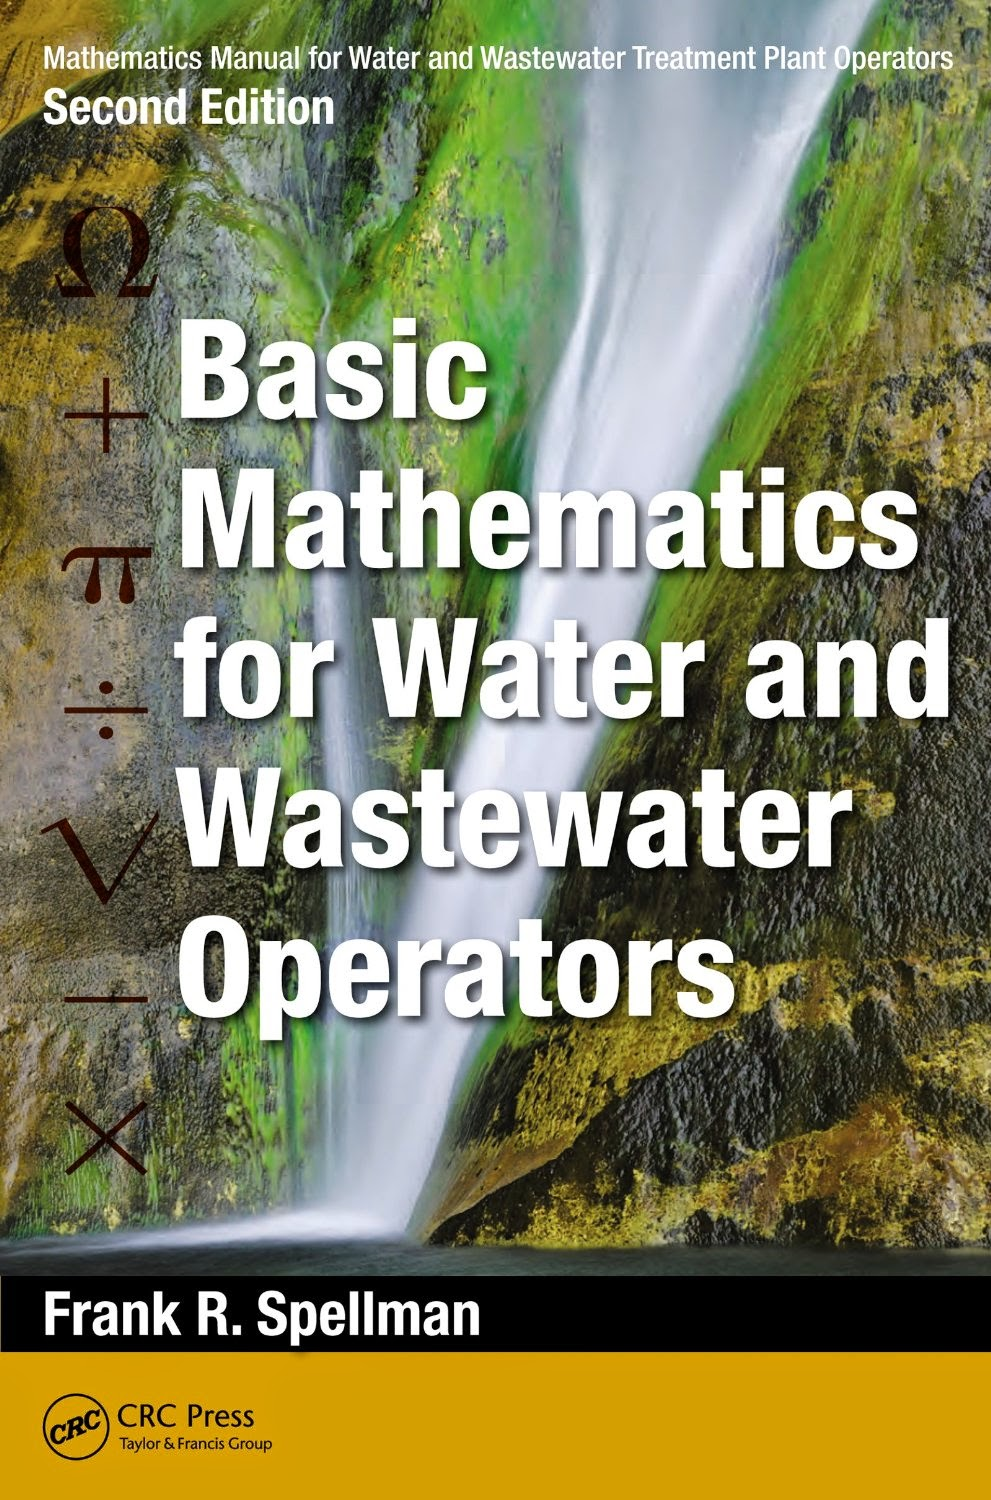 http://kingcheapebook.blogspot.com/2014/08/mathematics-manual-for-water-and.html